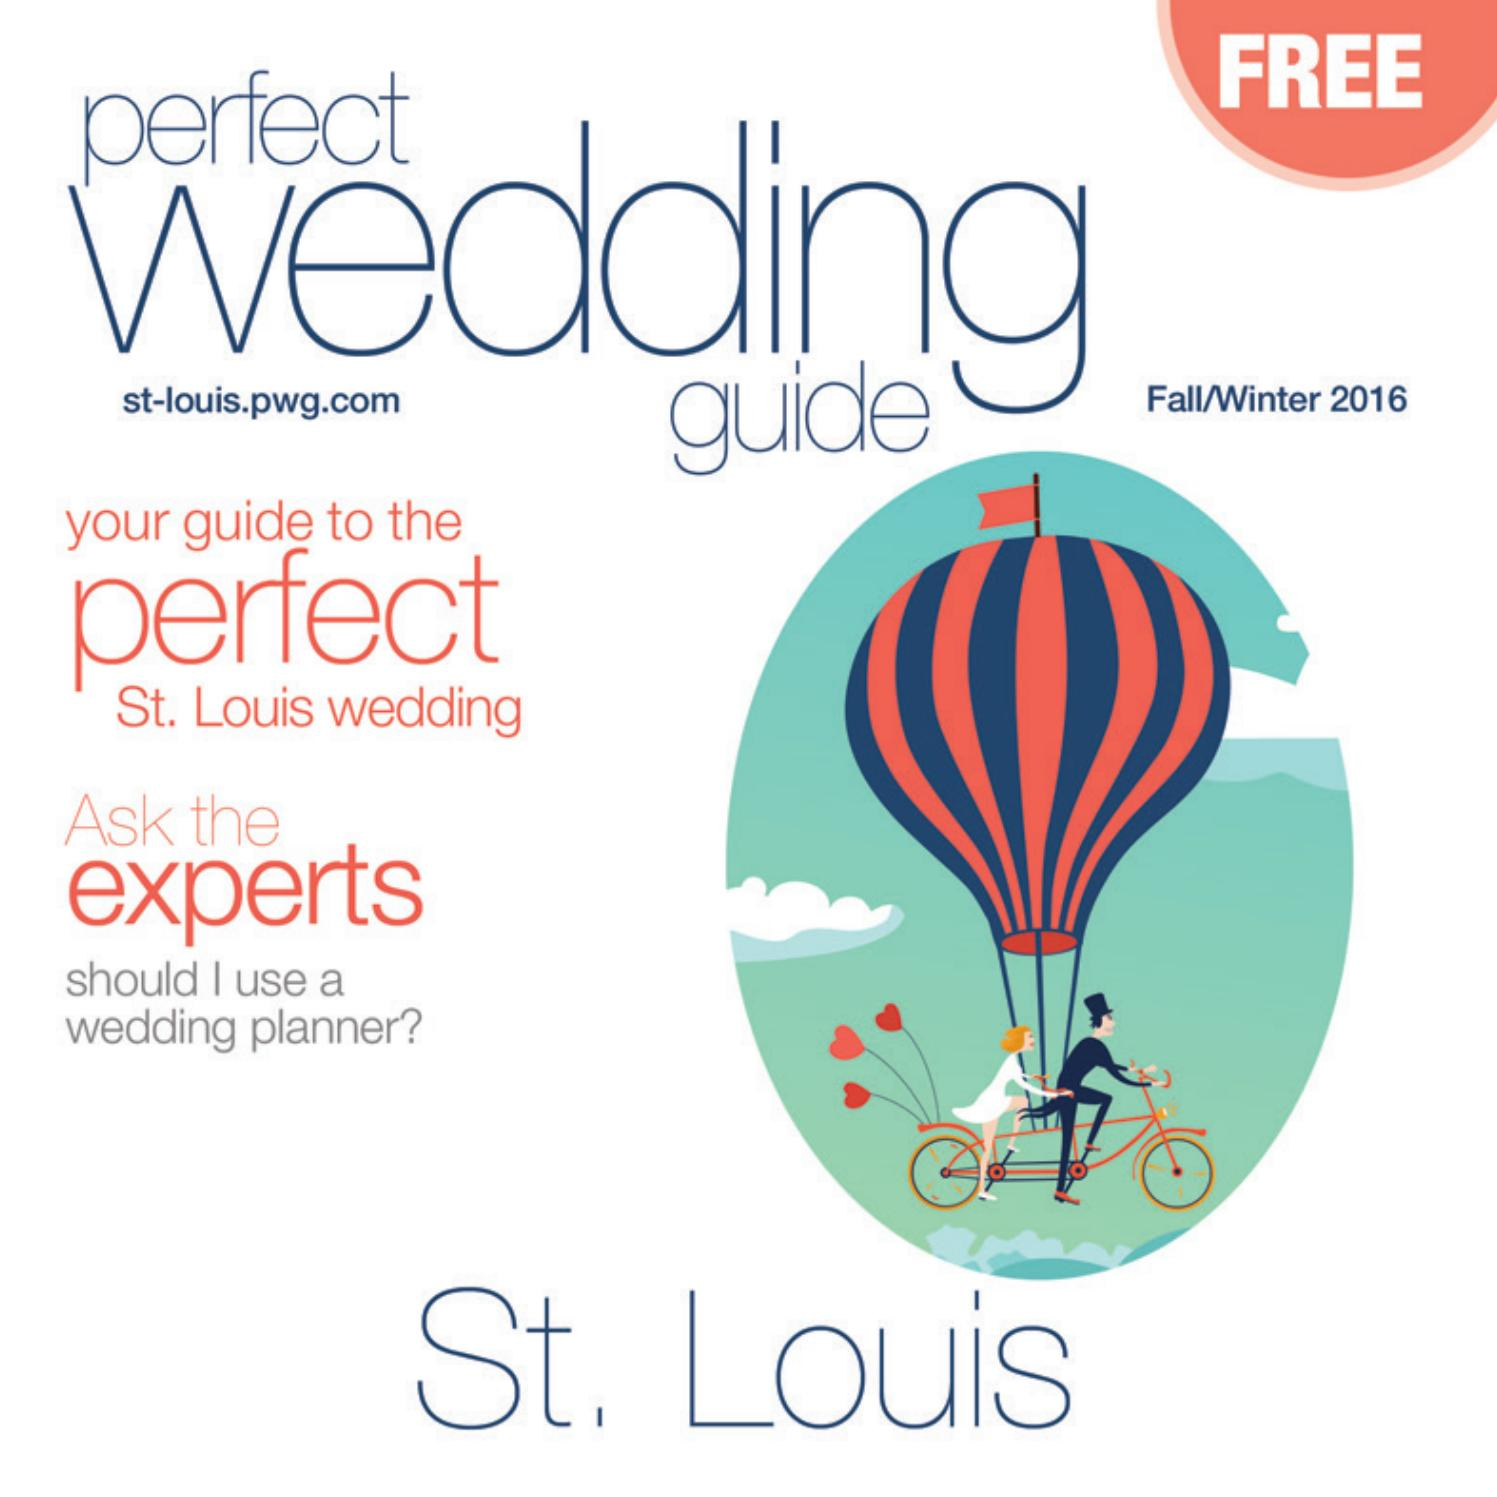 Perfect wedding guide st louis fallwinter 2016 by rick caldwell perfect wedding guide st louis fallwinter 2016 by rick caldwell issuu fandeluxe Gallery